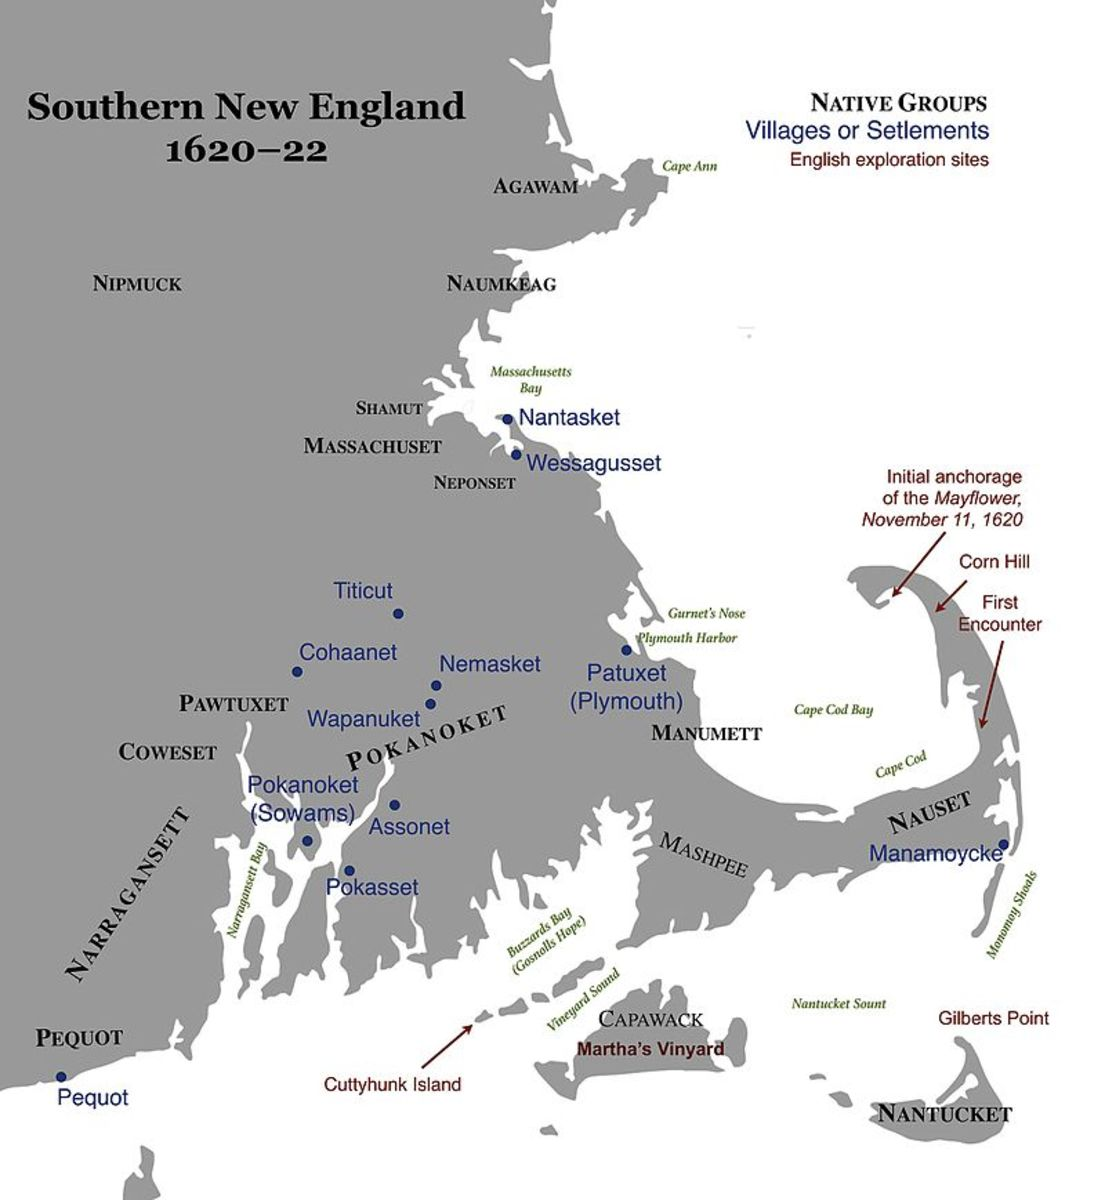 Map of Southern New England, 1620–22, showing Native peoples and English settlements